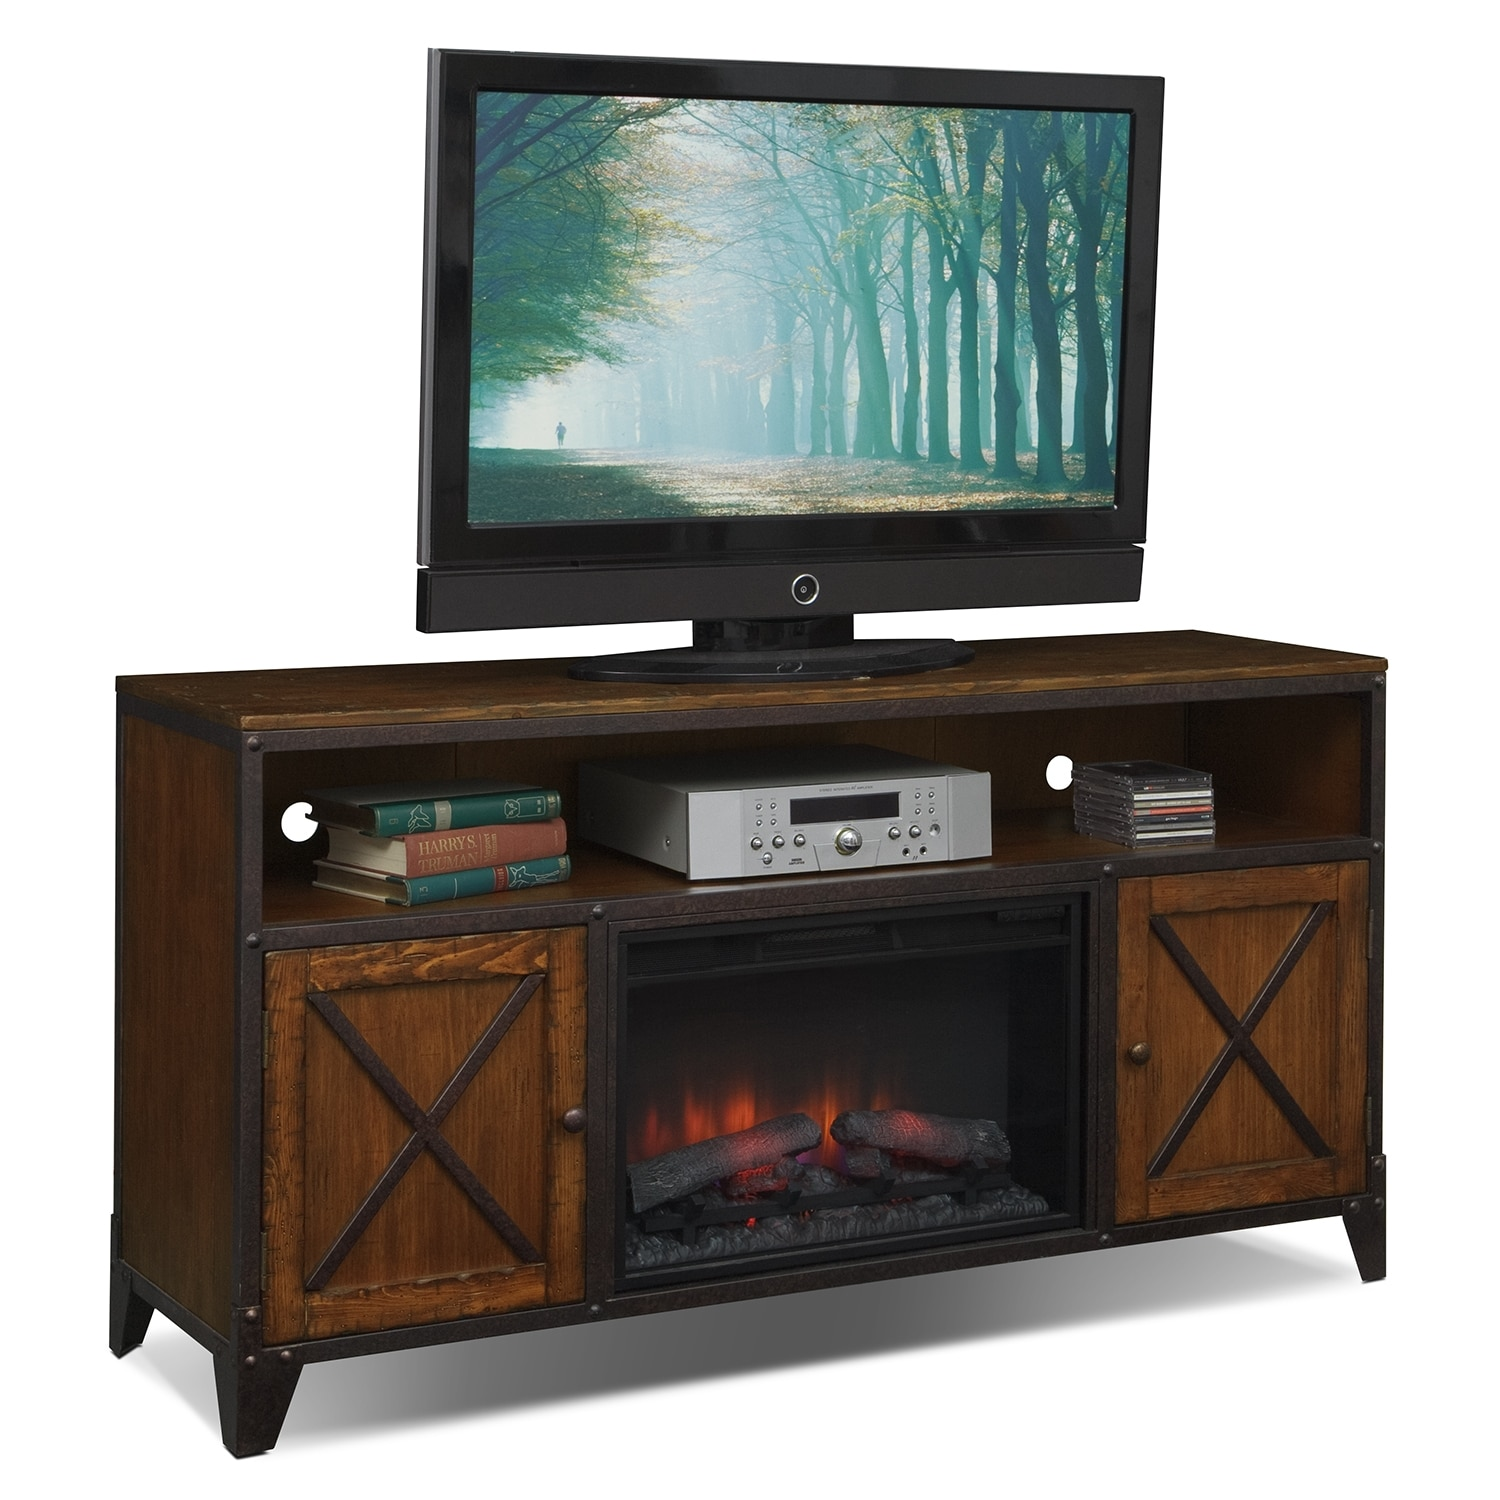 Shortline Fireplace TV Stand with Traditional Insert - Distressed Pine